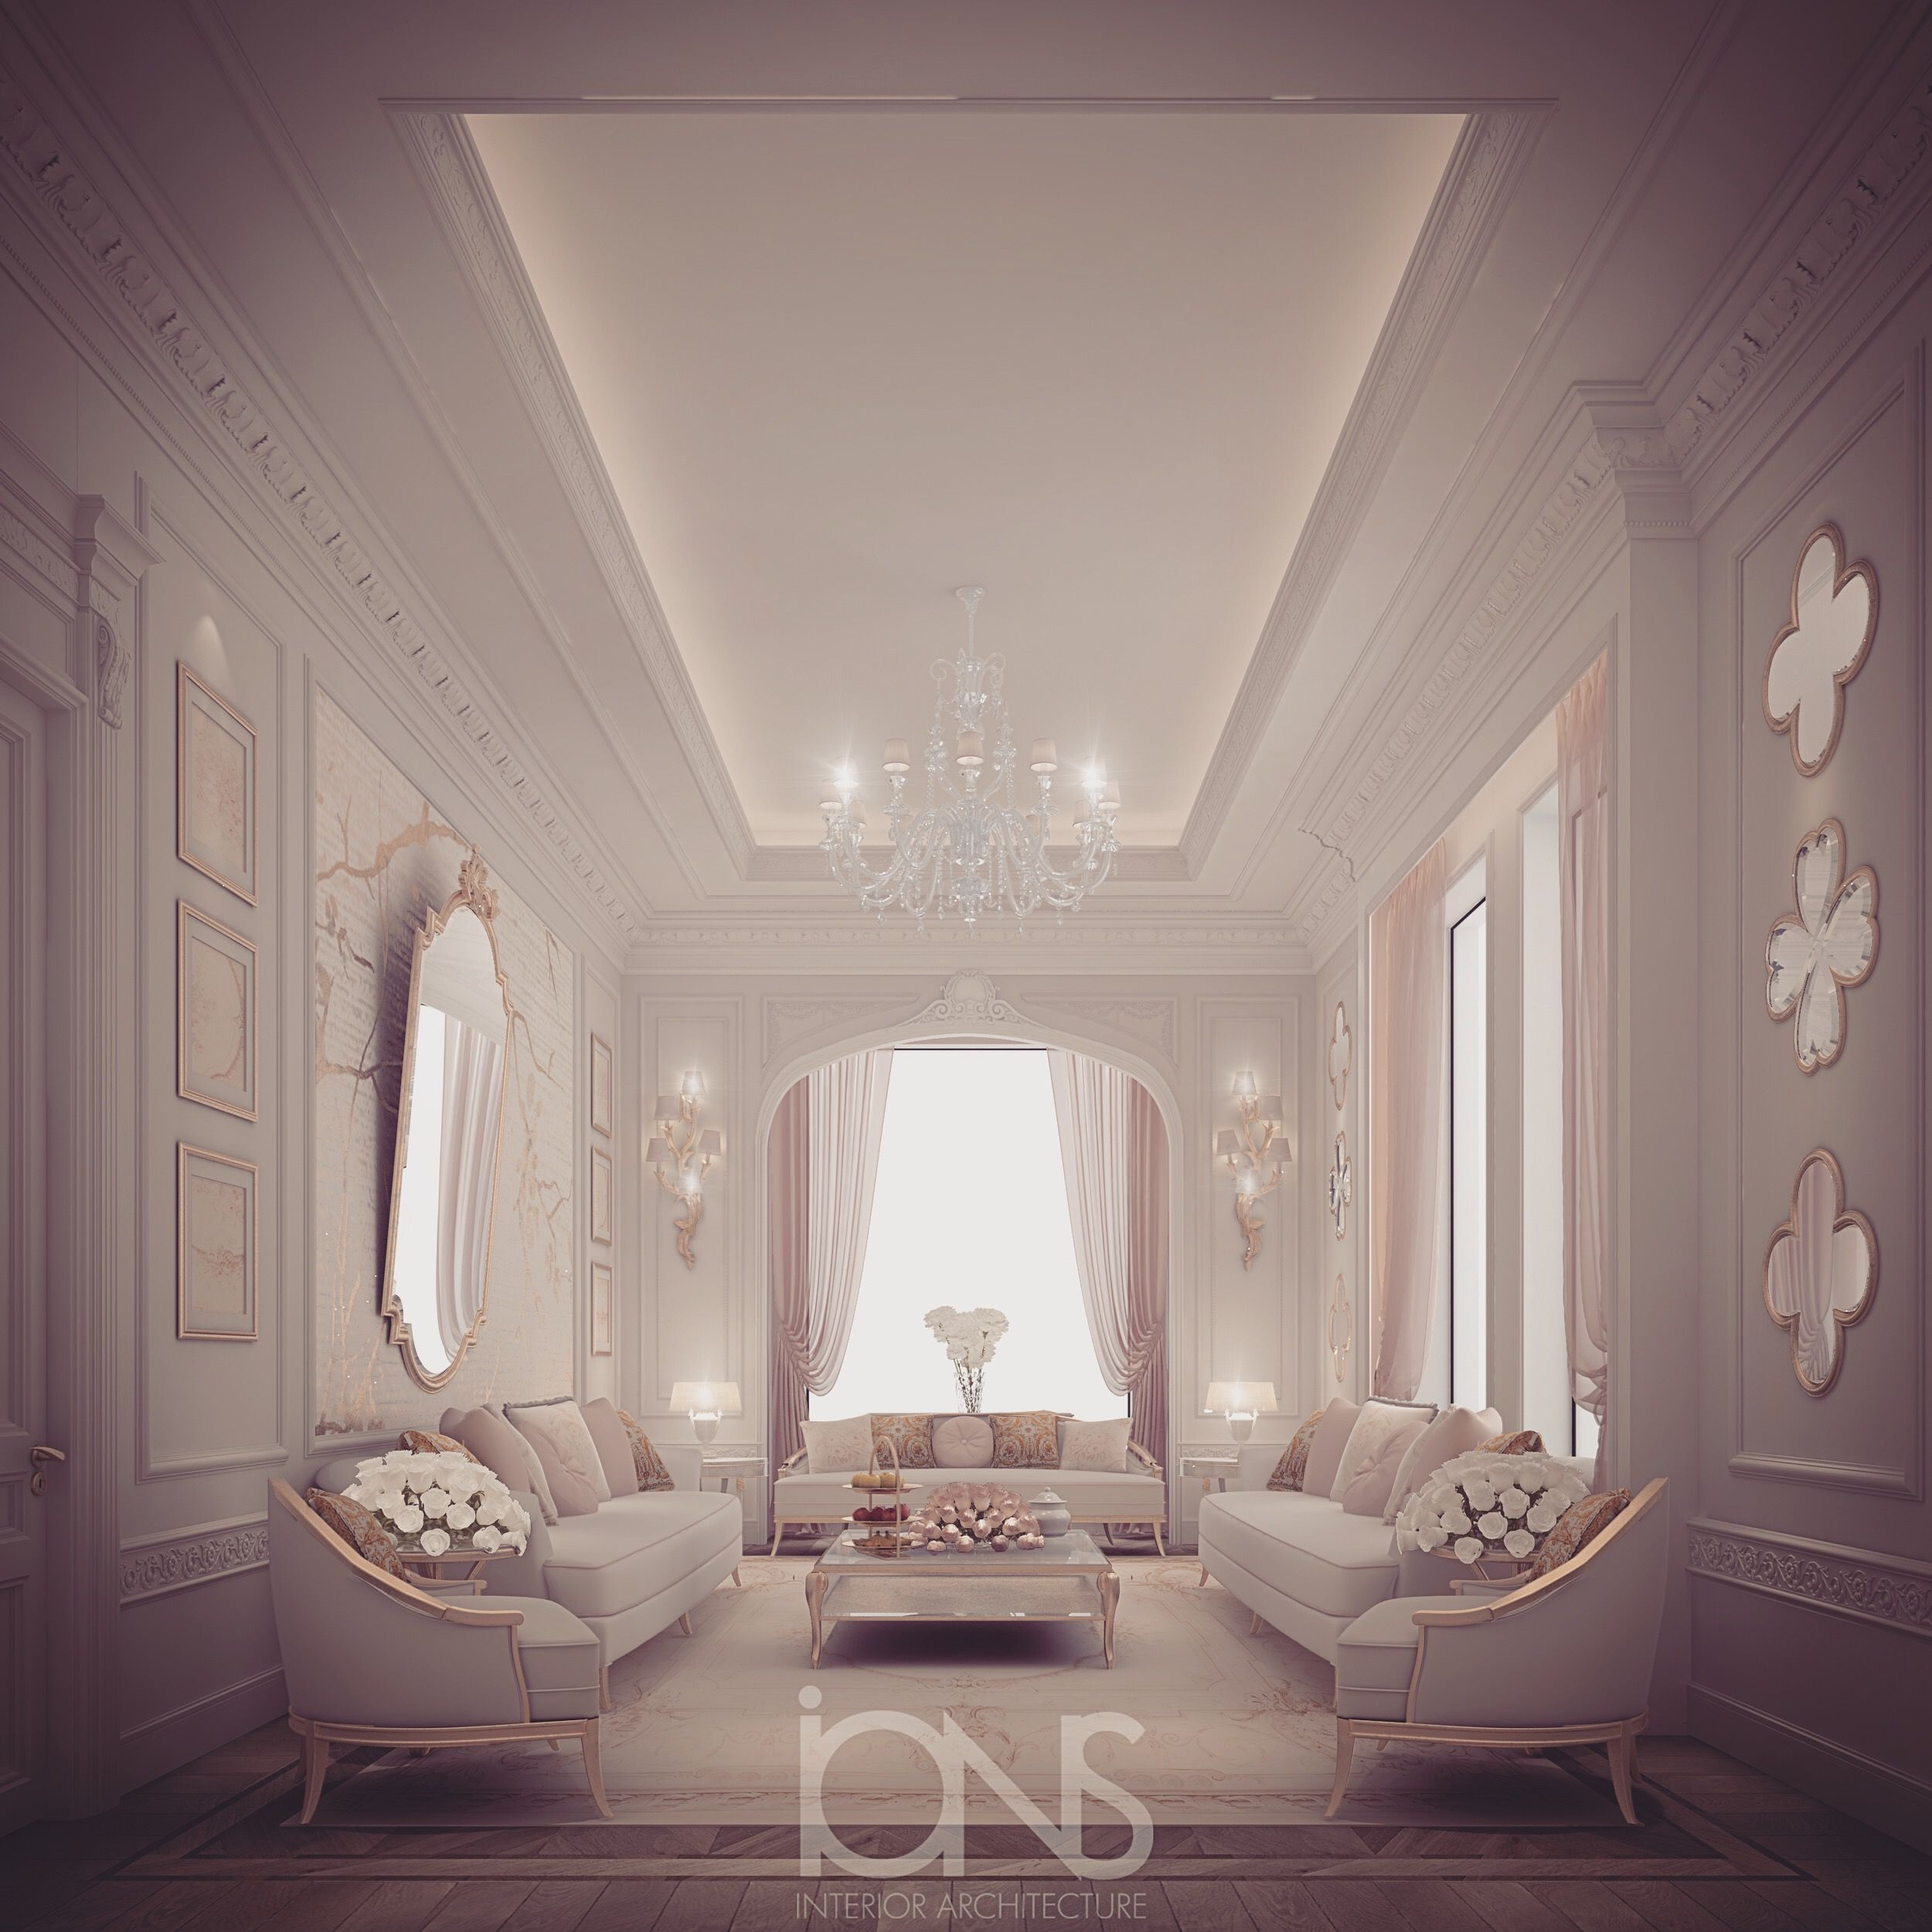 Ions Interior Design Dubai sitting room designer by ions design (with images) | luxury